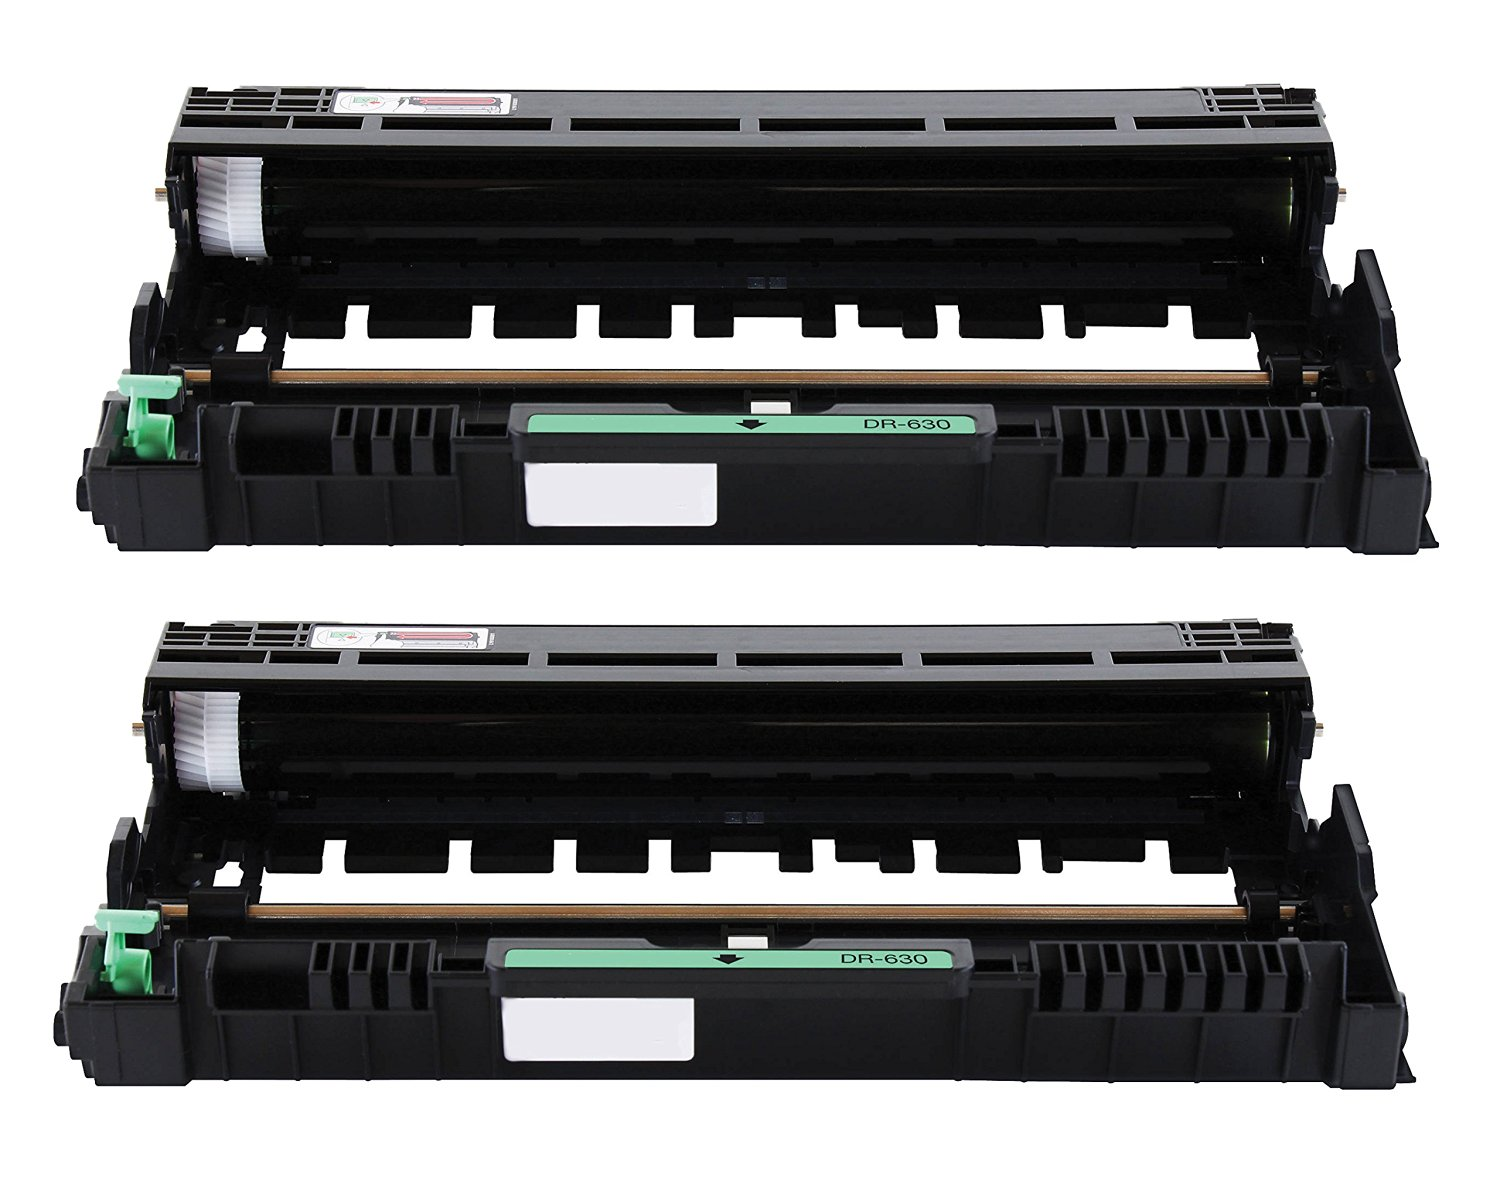 Printronic 2 Pack Compatible Brother DR630 Drum Unit for Brother MFC-L2700DW HL-L2340DW MFC-L2740DW DCP-L2520DW DCP-L2540DW HL-L2360DW HL-L2380DW HL-L2300D MFC-L2720DW HL-L2320D MFC-L2705DW Printer